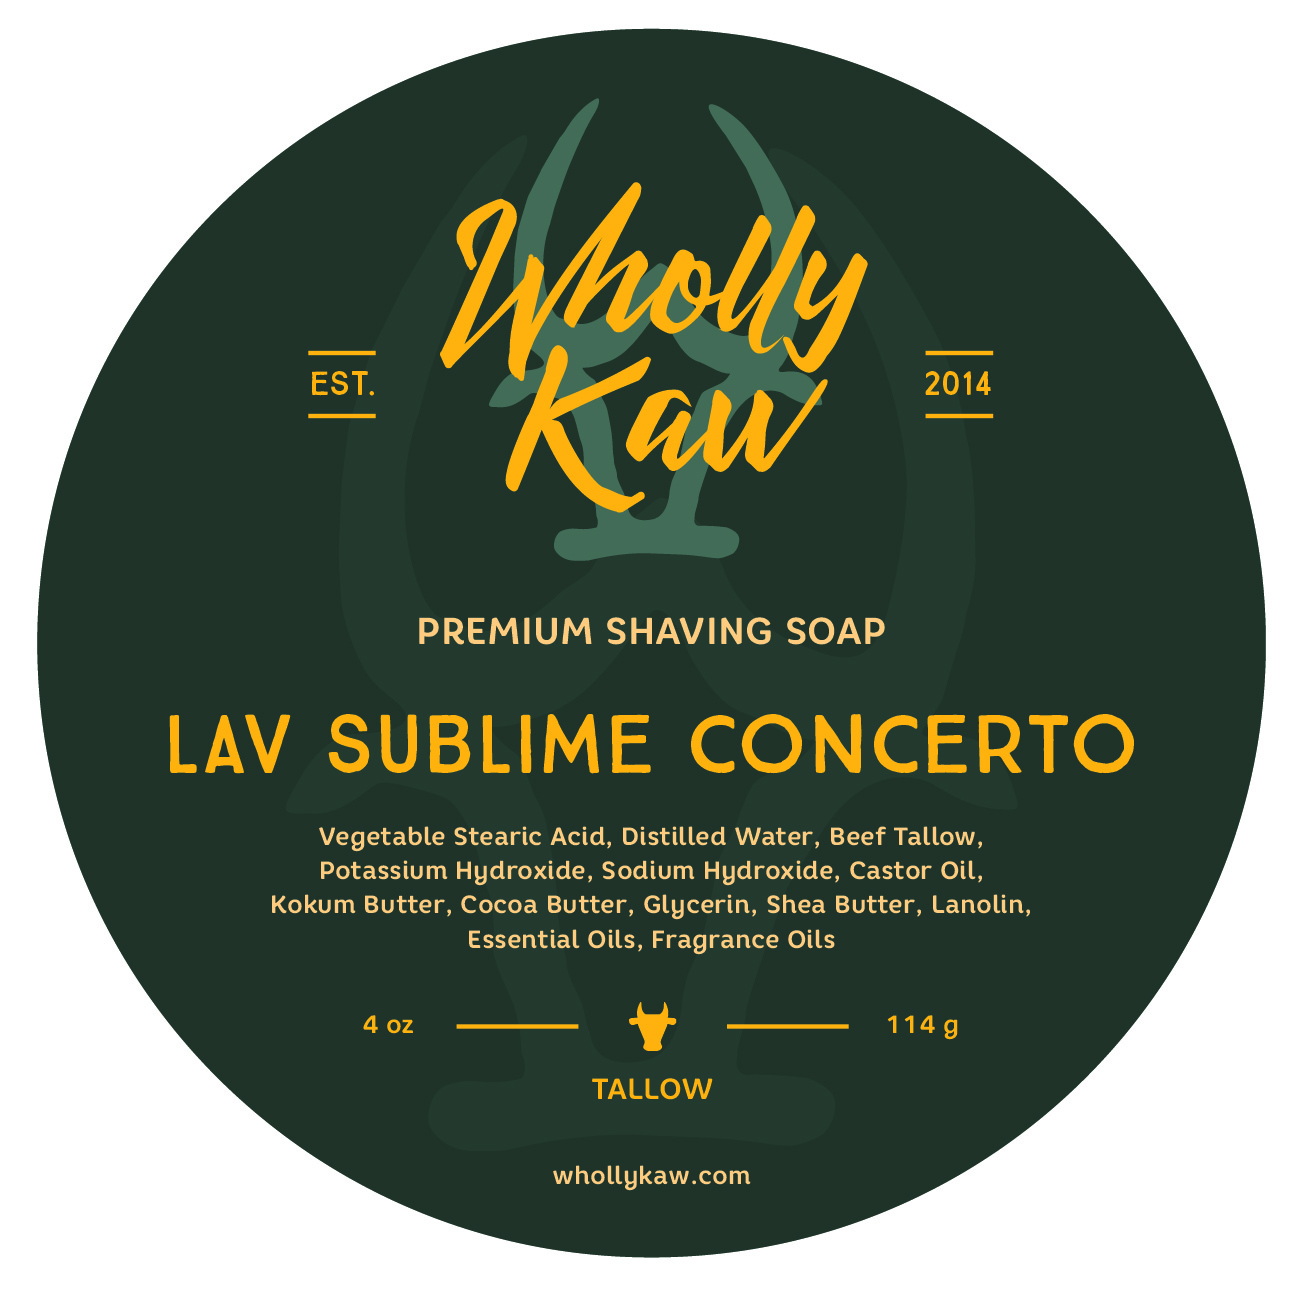 Wholly Kaw - Lav Sublime Concerto - Soap image